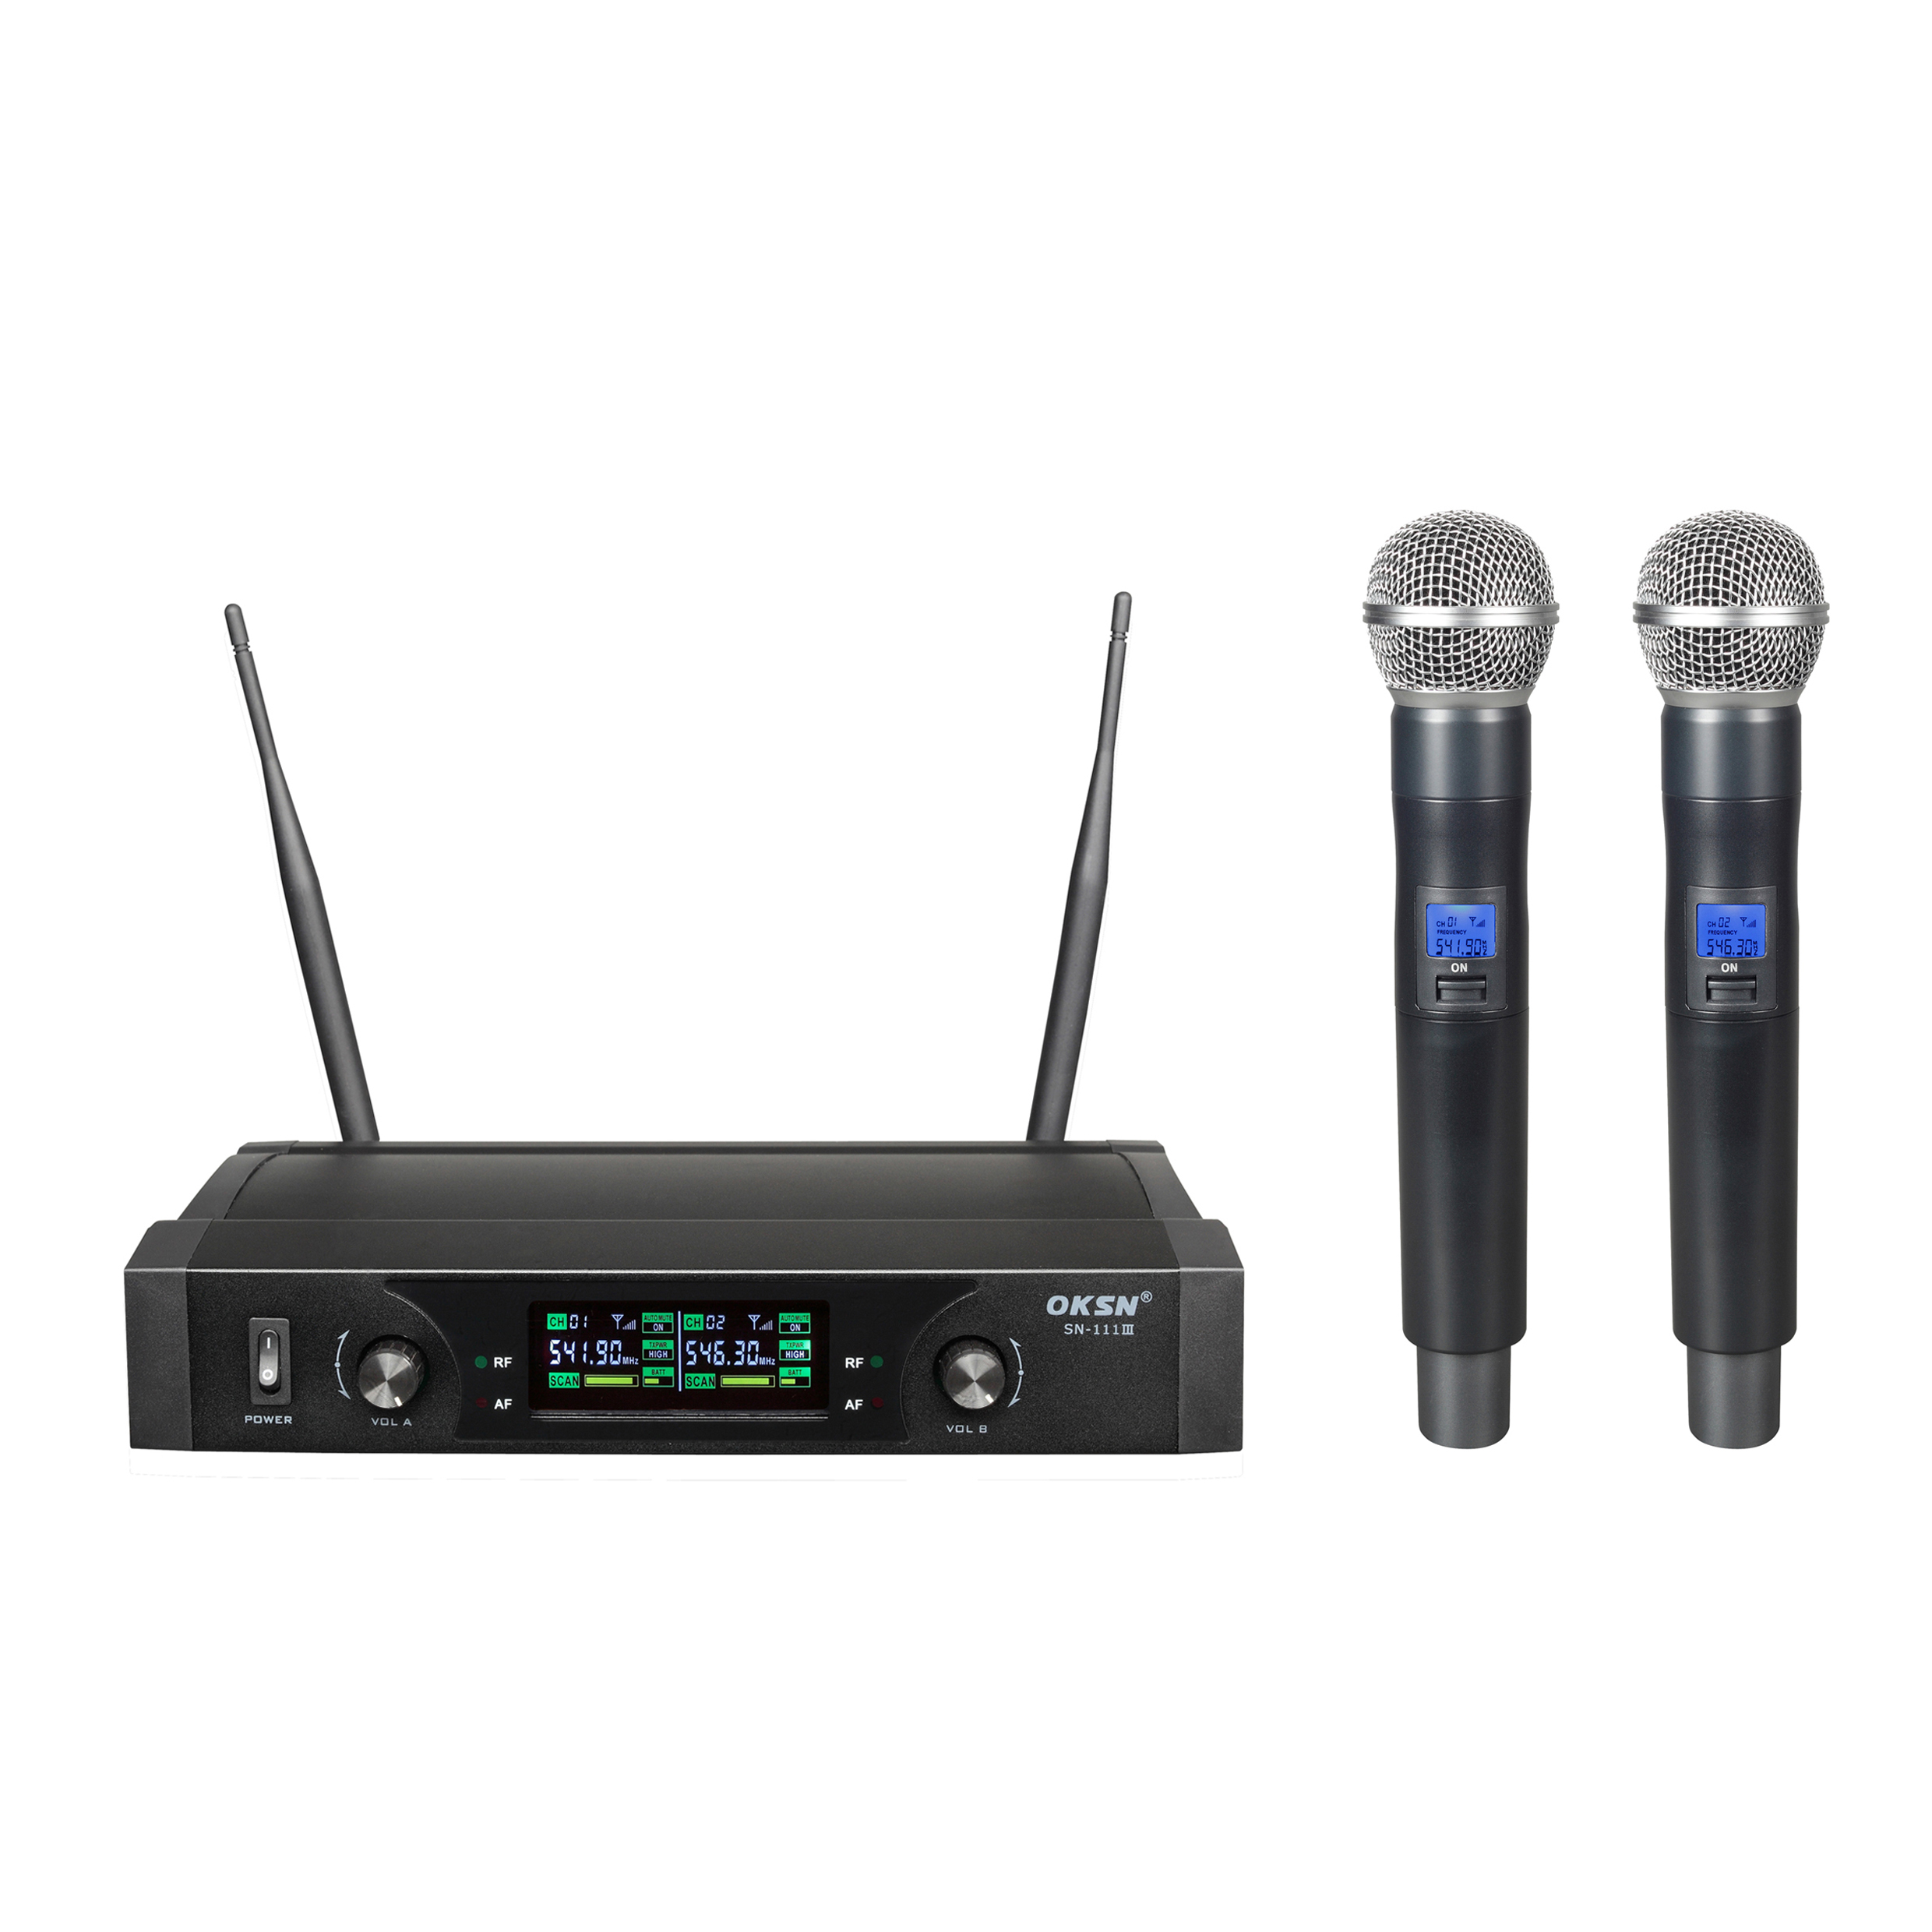 SN-111Ⅲ wireless microphone